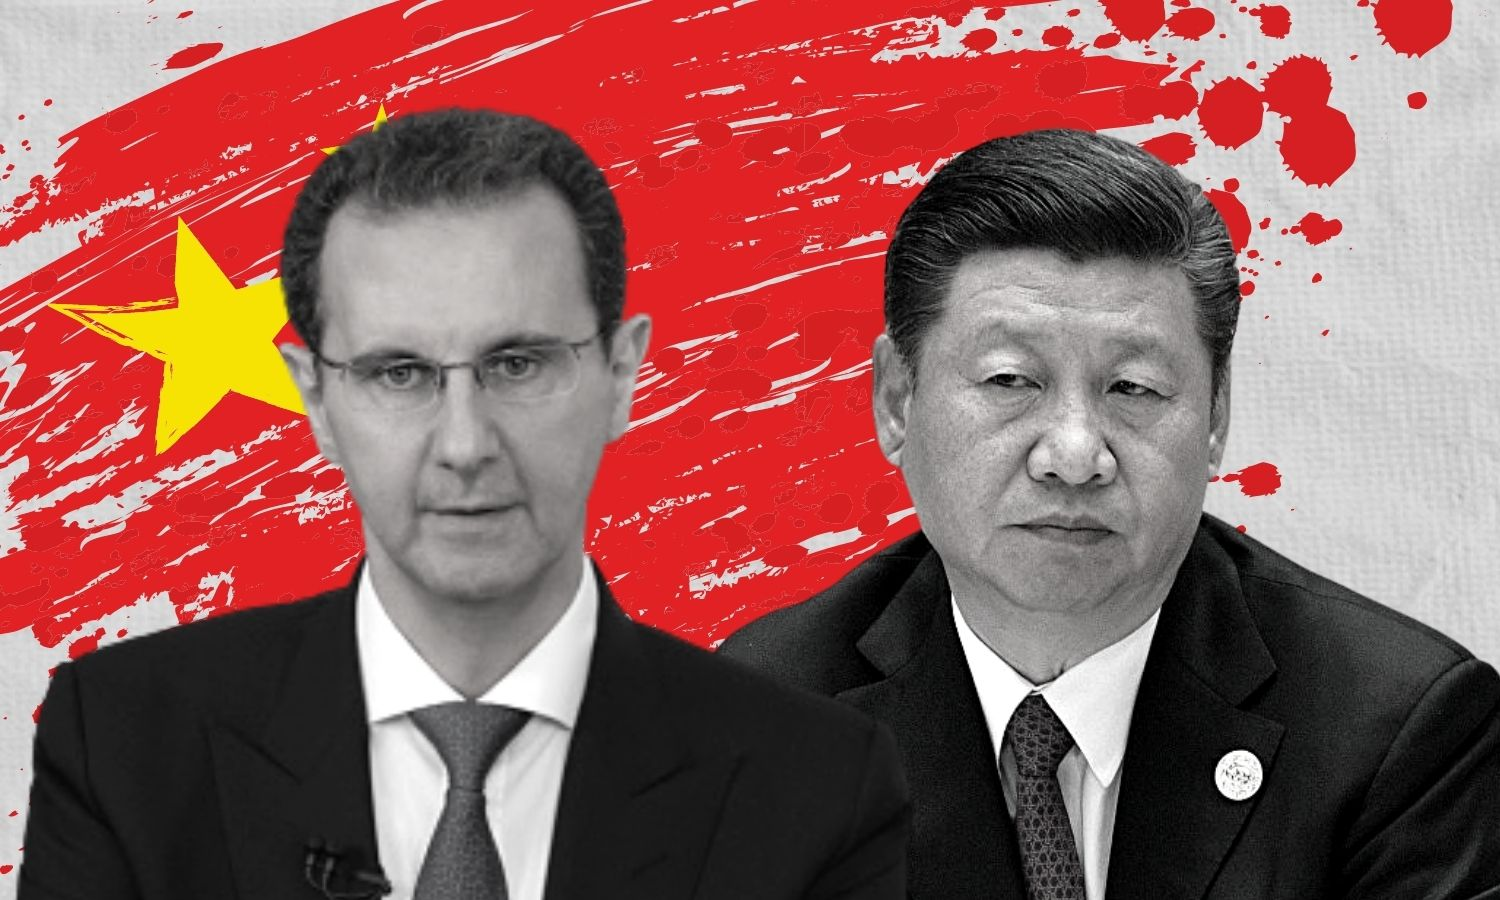 Chinese President Xi Jinping and the head of the Syrian regime Bashar al-Assad (edited by Enab Baladi)